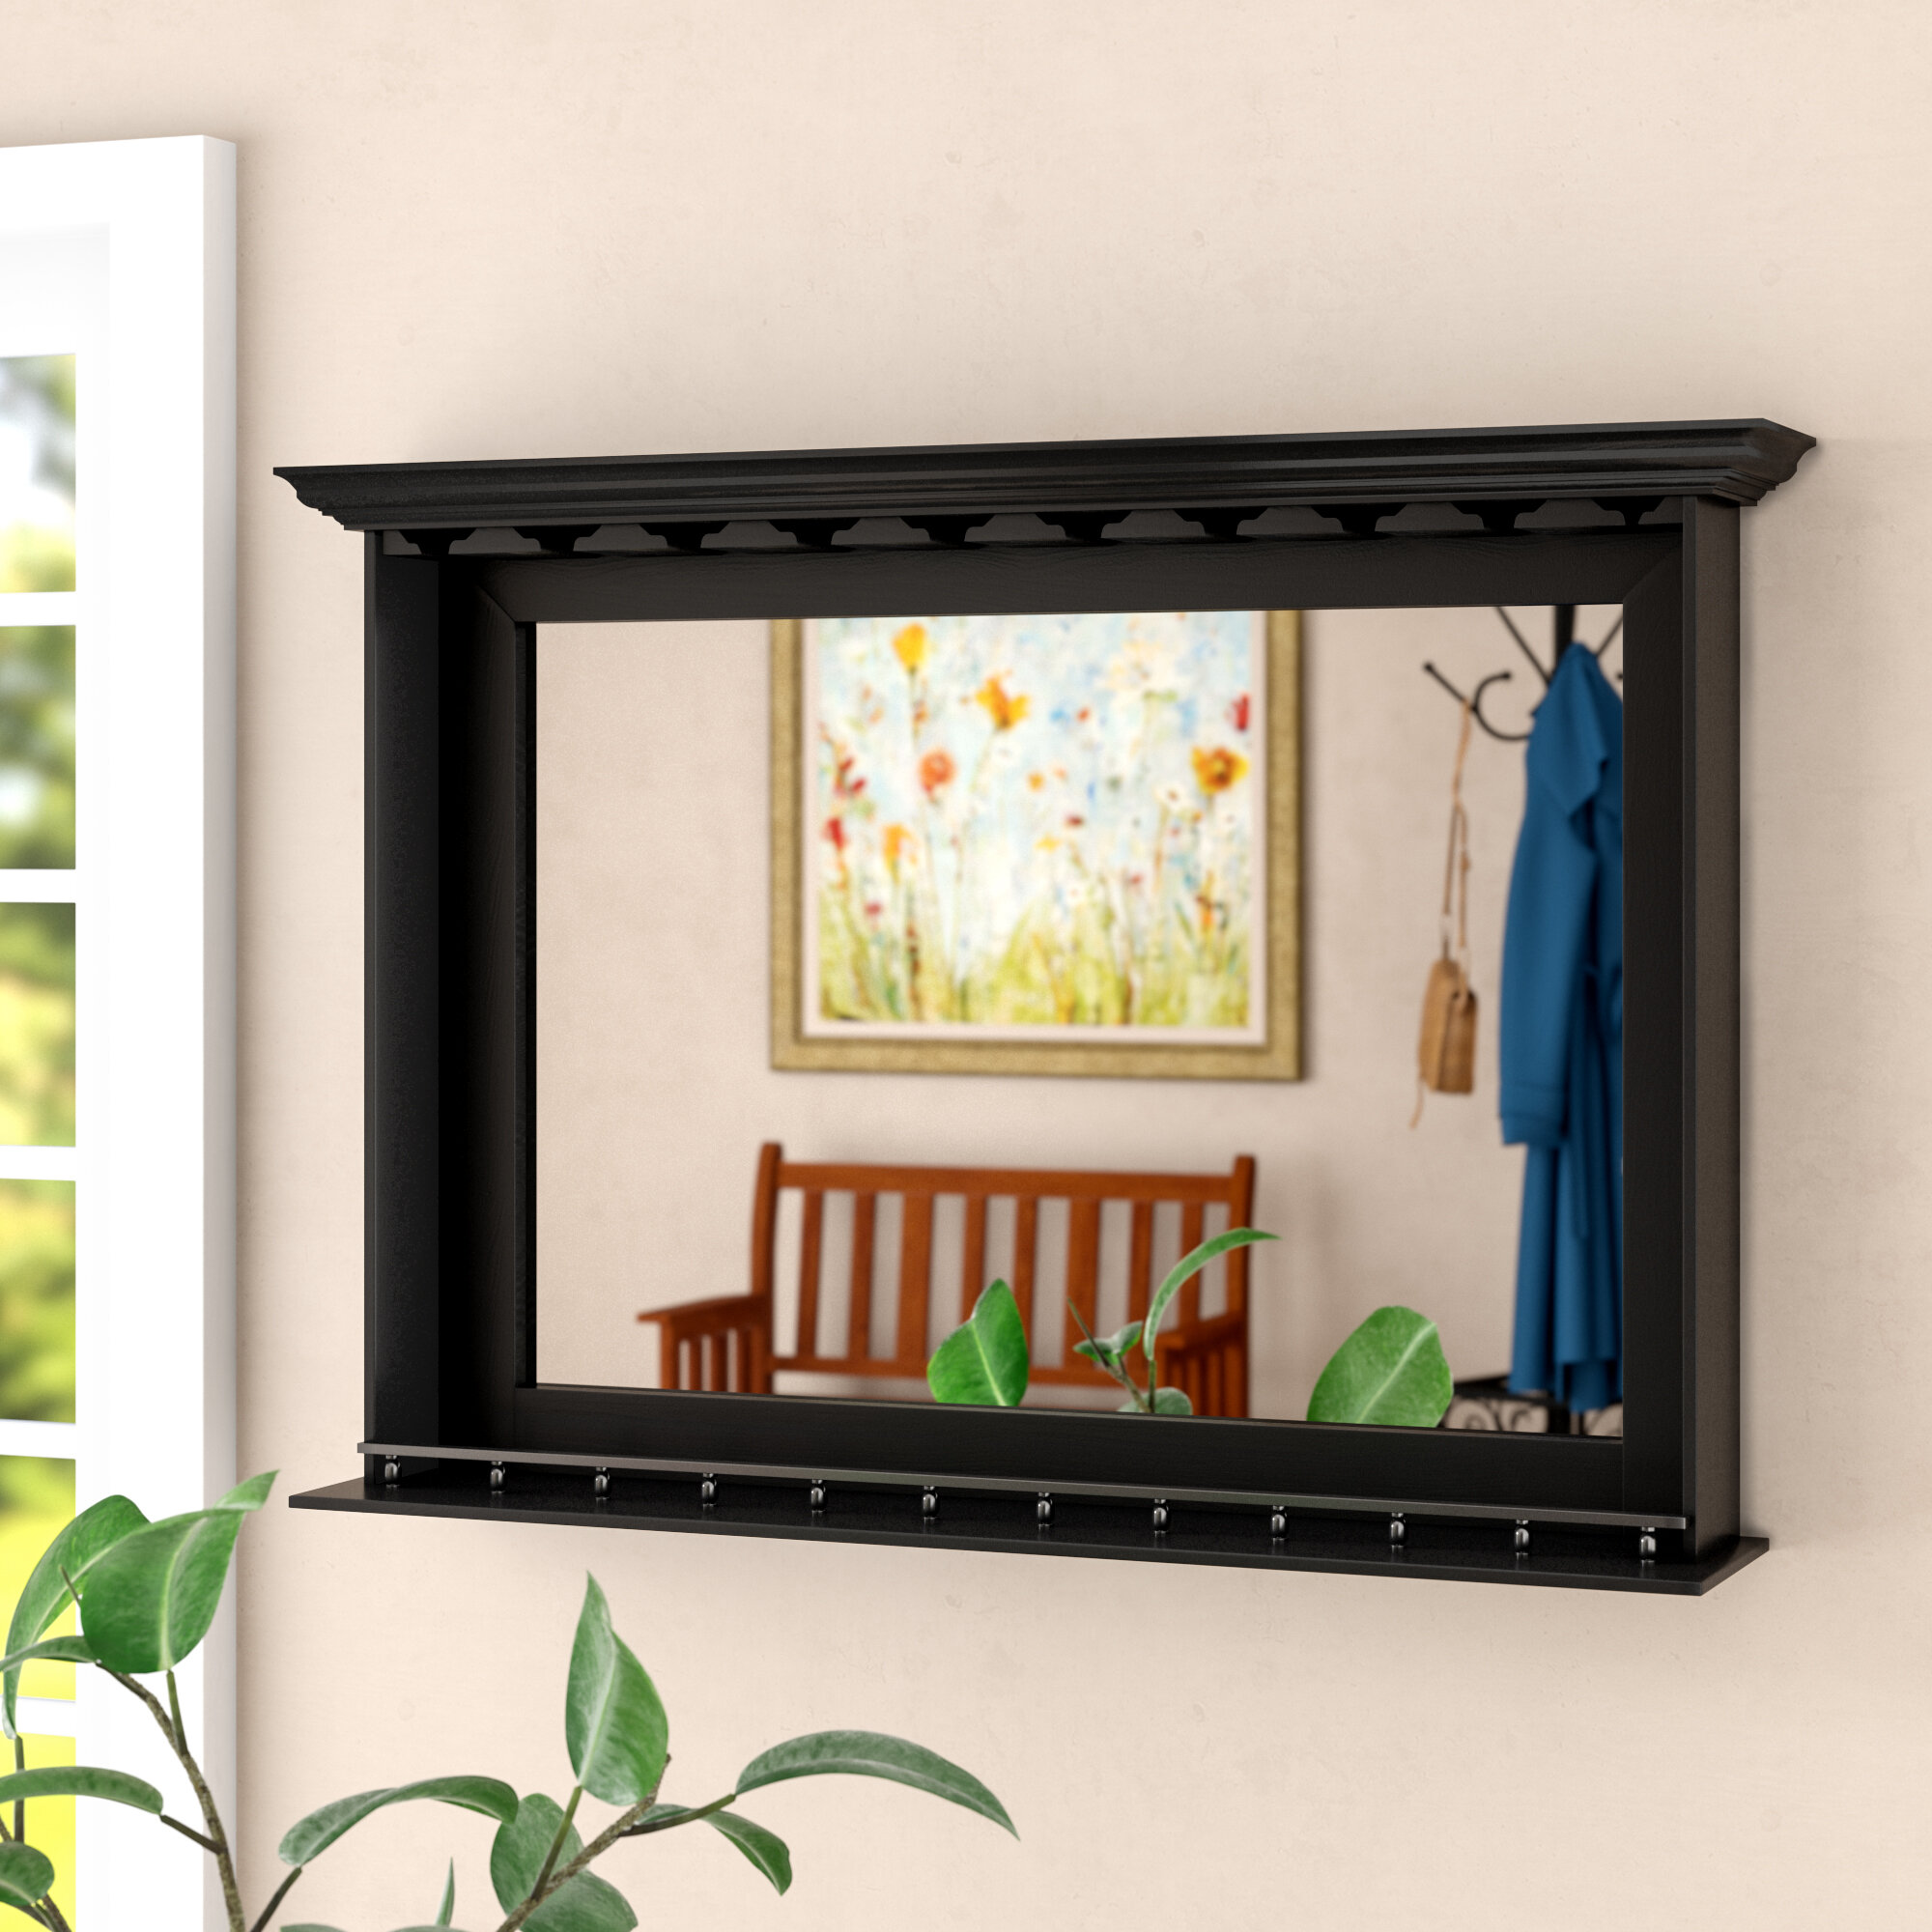 Darby Home Co Chiles Bar Traditional Accent Mirror Reviews Wayfair